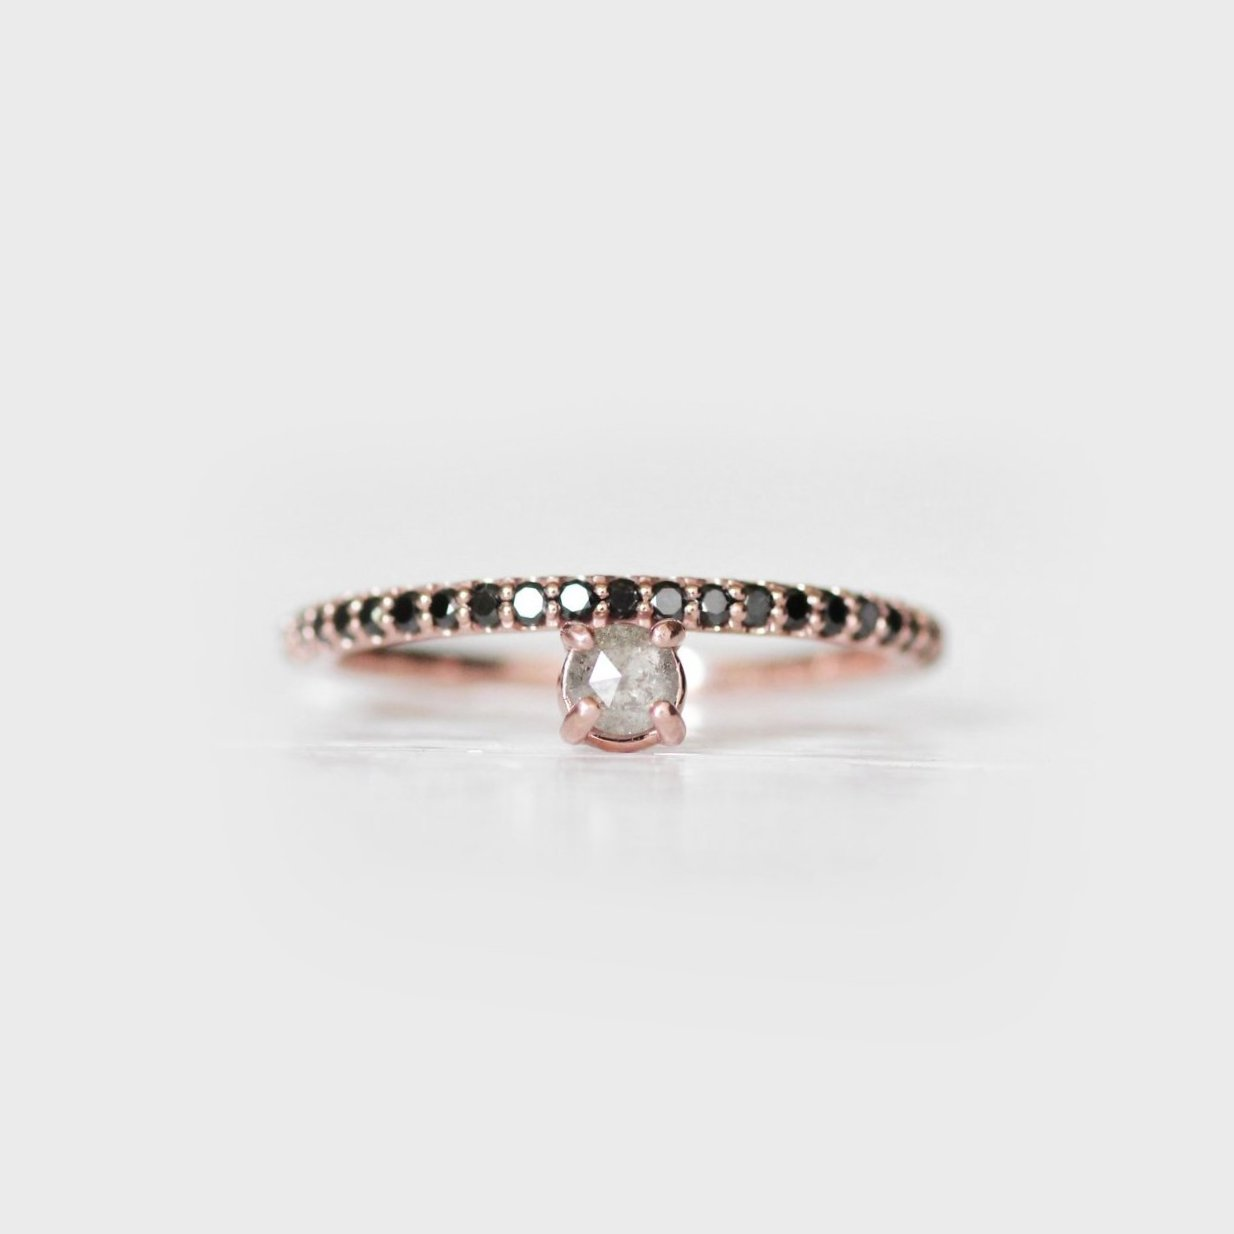 Nellie - Made to order - customizable stacking asymmetrical diamond band wedding ring - Celestial Diamonds ® by Midwinter Co.